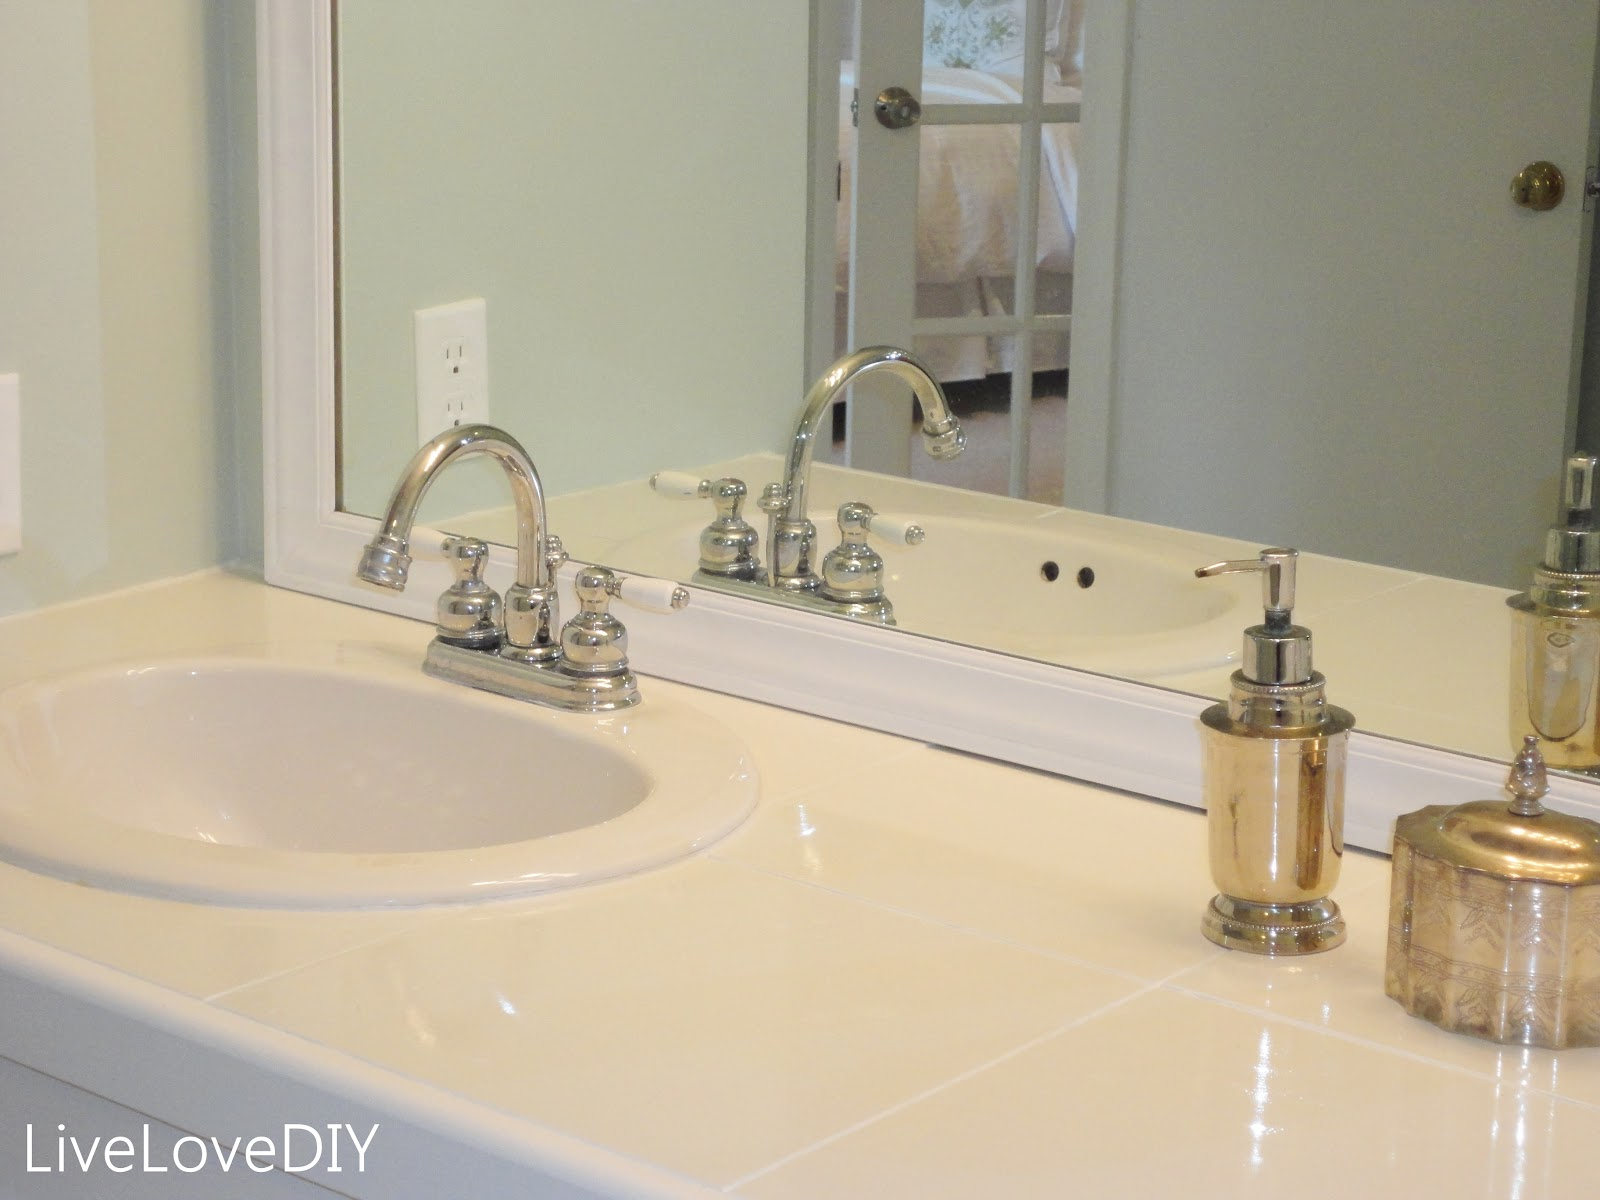 Livelovediy easy diy ideas for updating your bathroom for Bathroom countertops